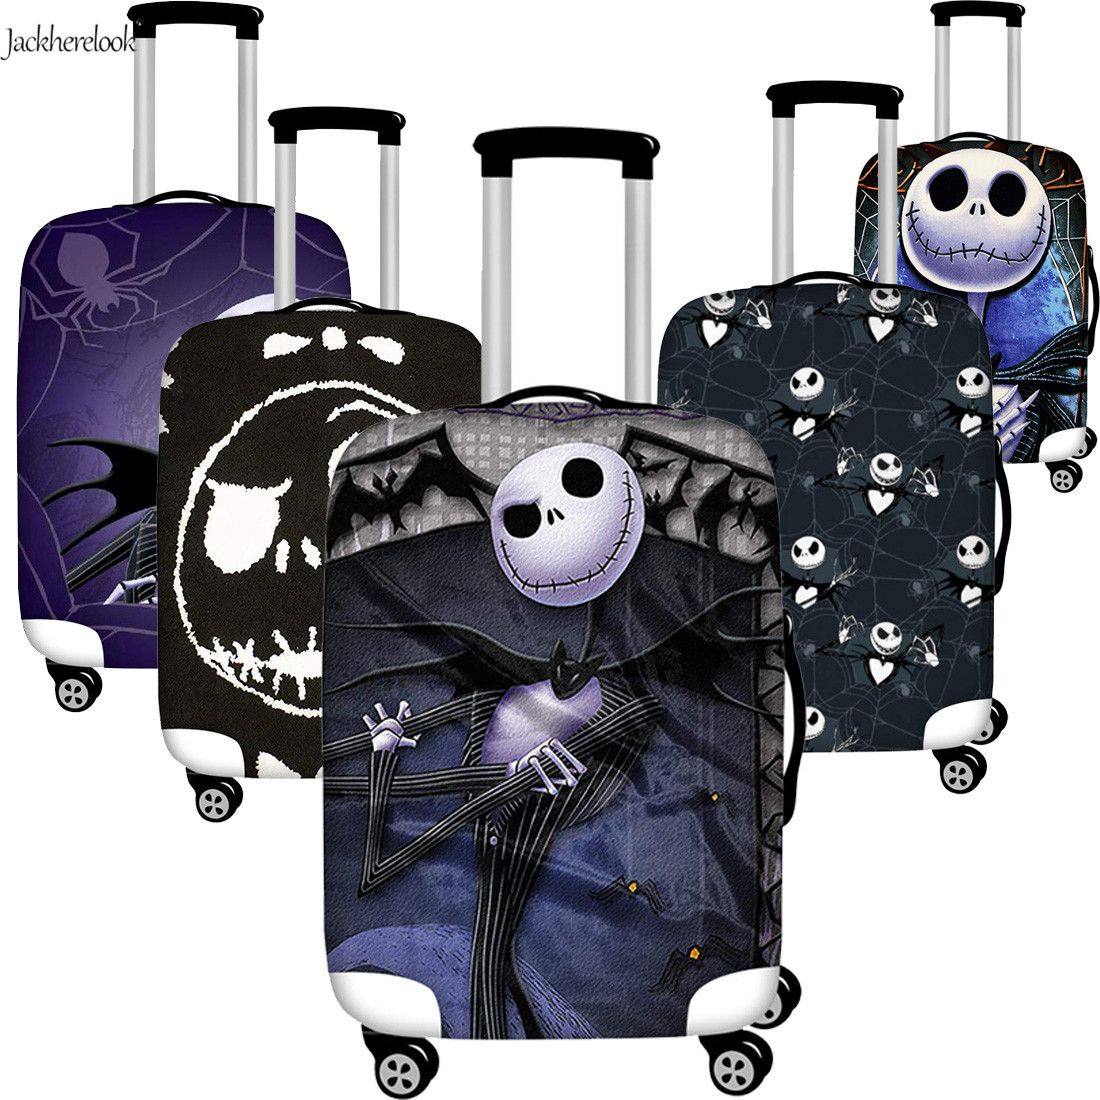 Jackherelook Luggage Protective Cover The Nightmare Before Christmas Travel Suitcase Dust-proof Cover Elastic Trolley Bag Sheet